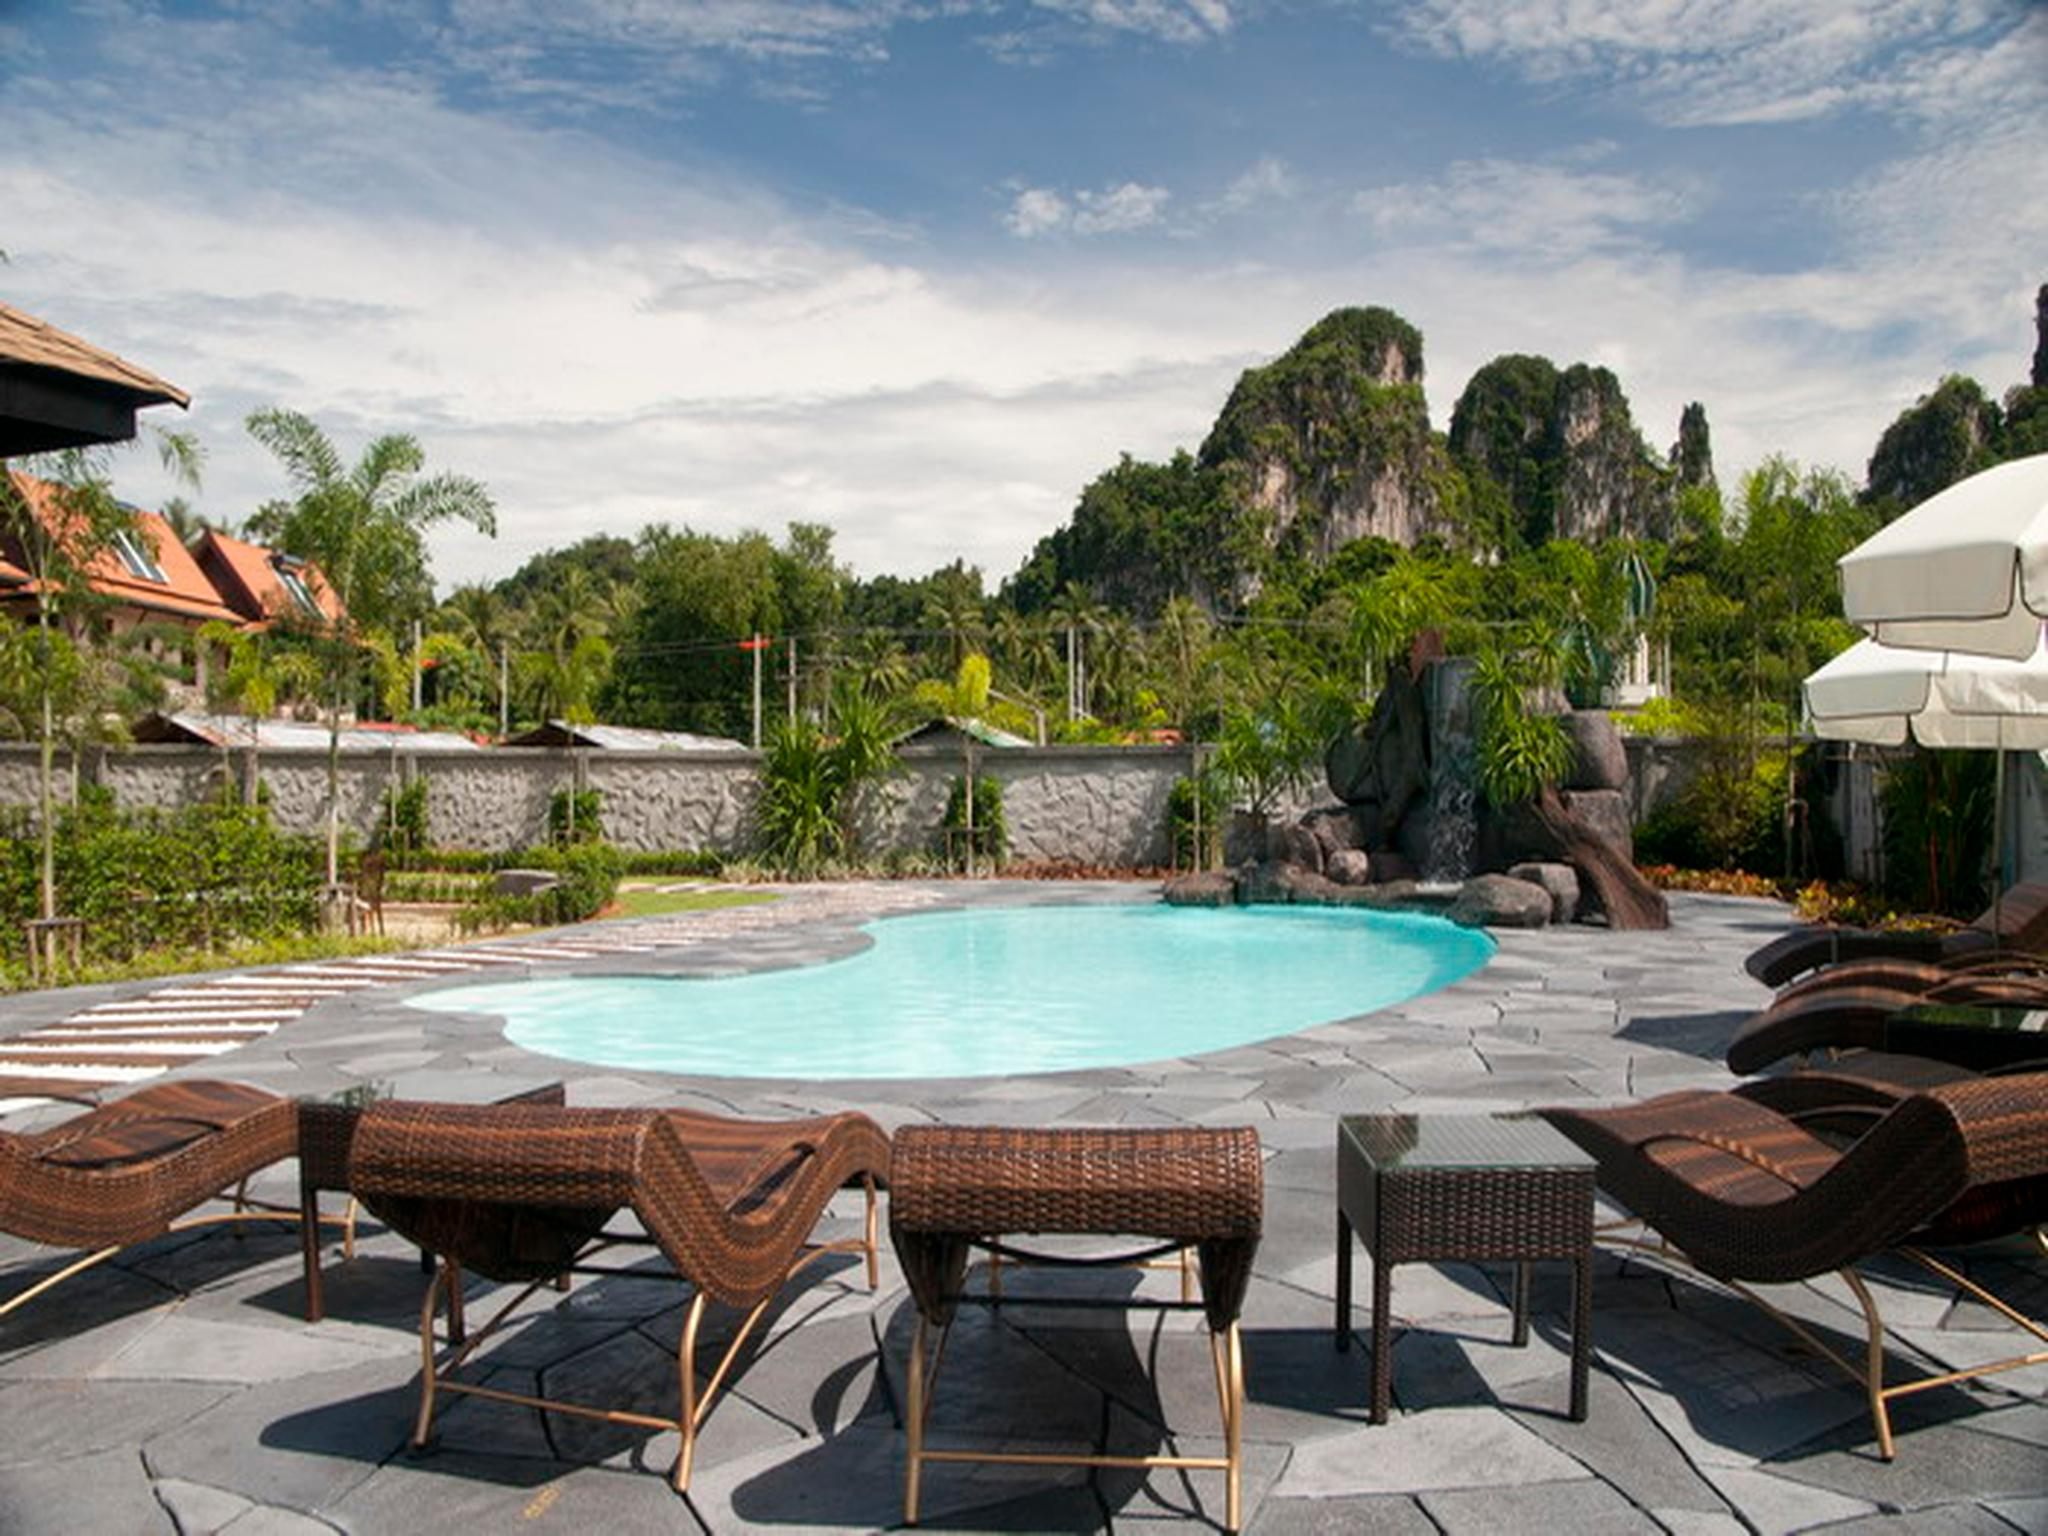 Krabi Dream Home Pool Villa In Thailand